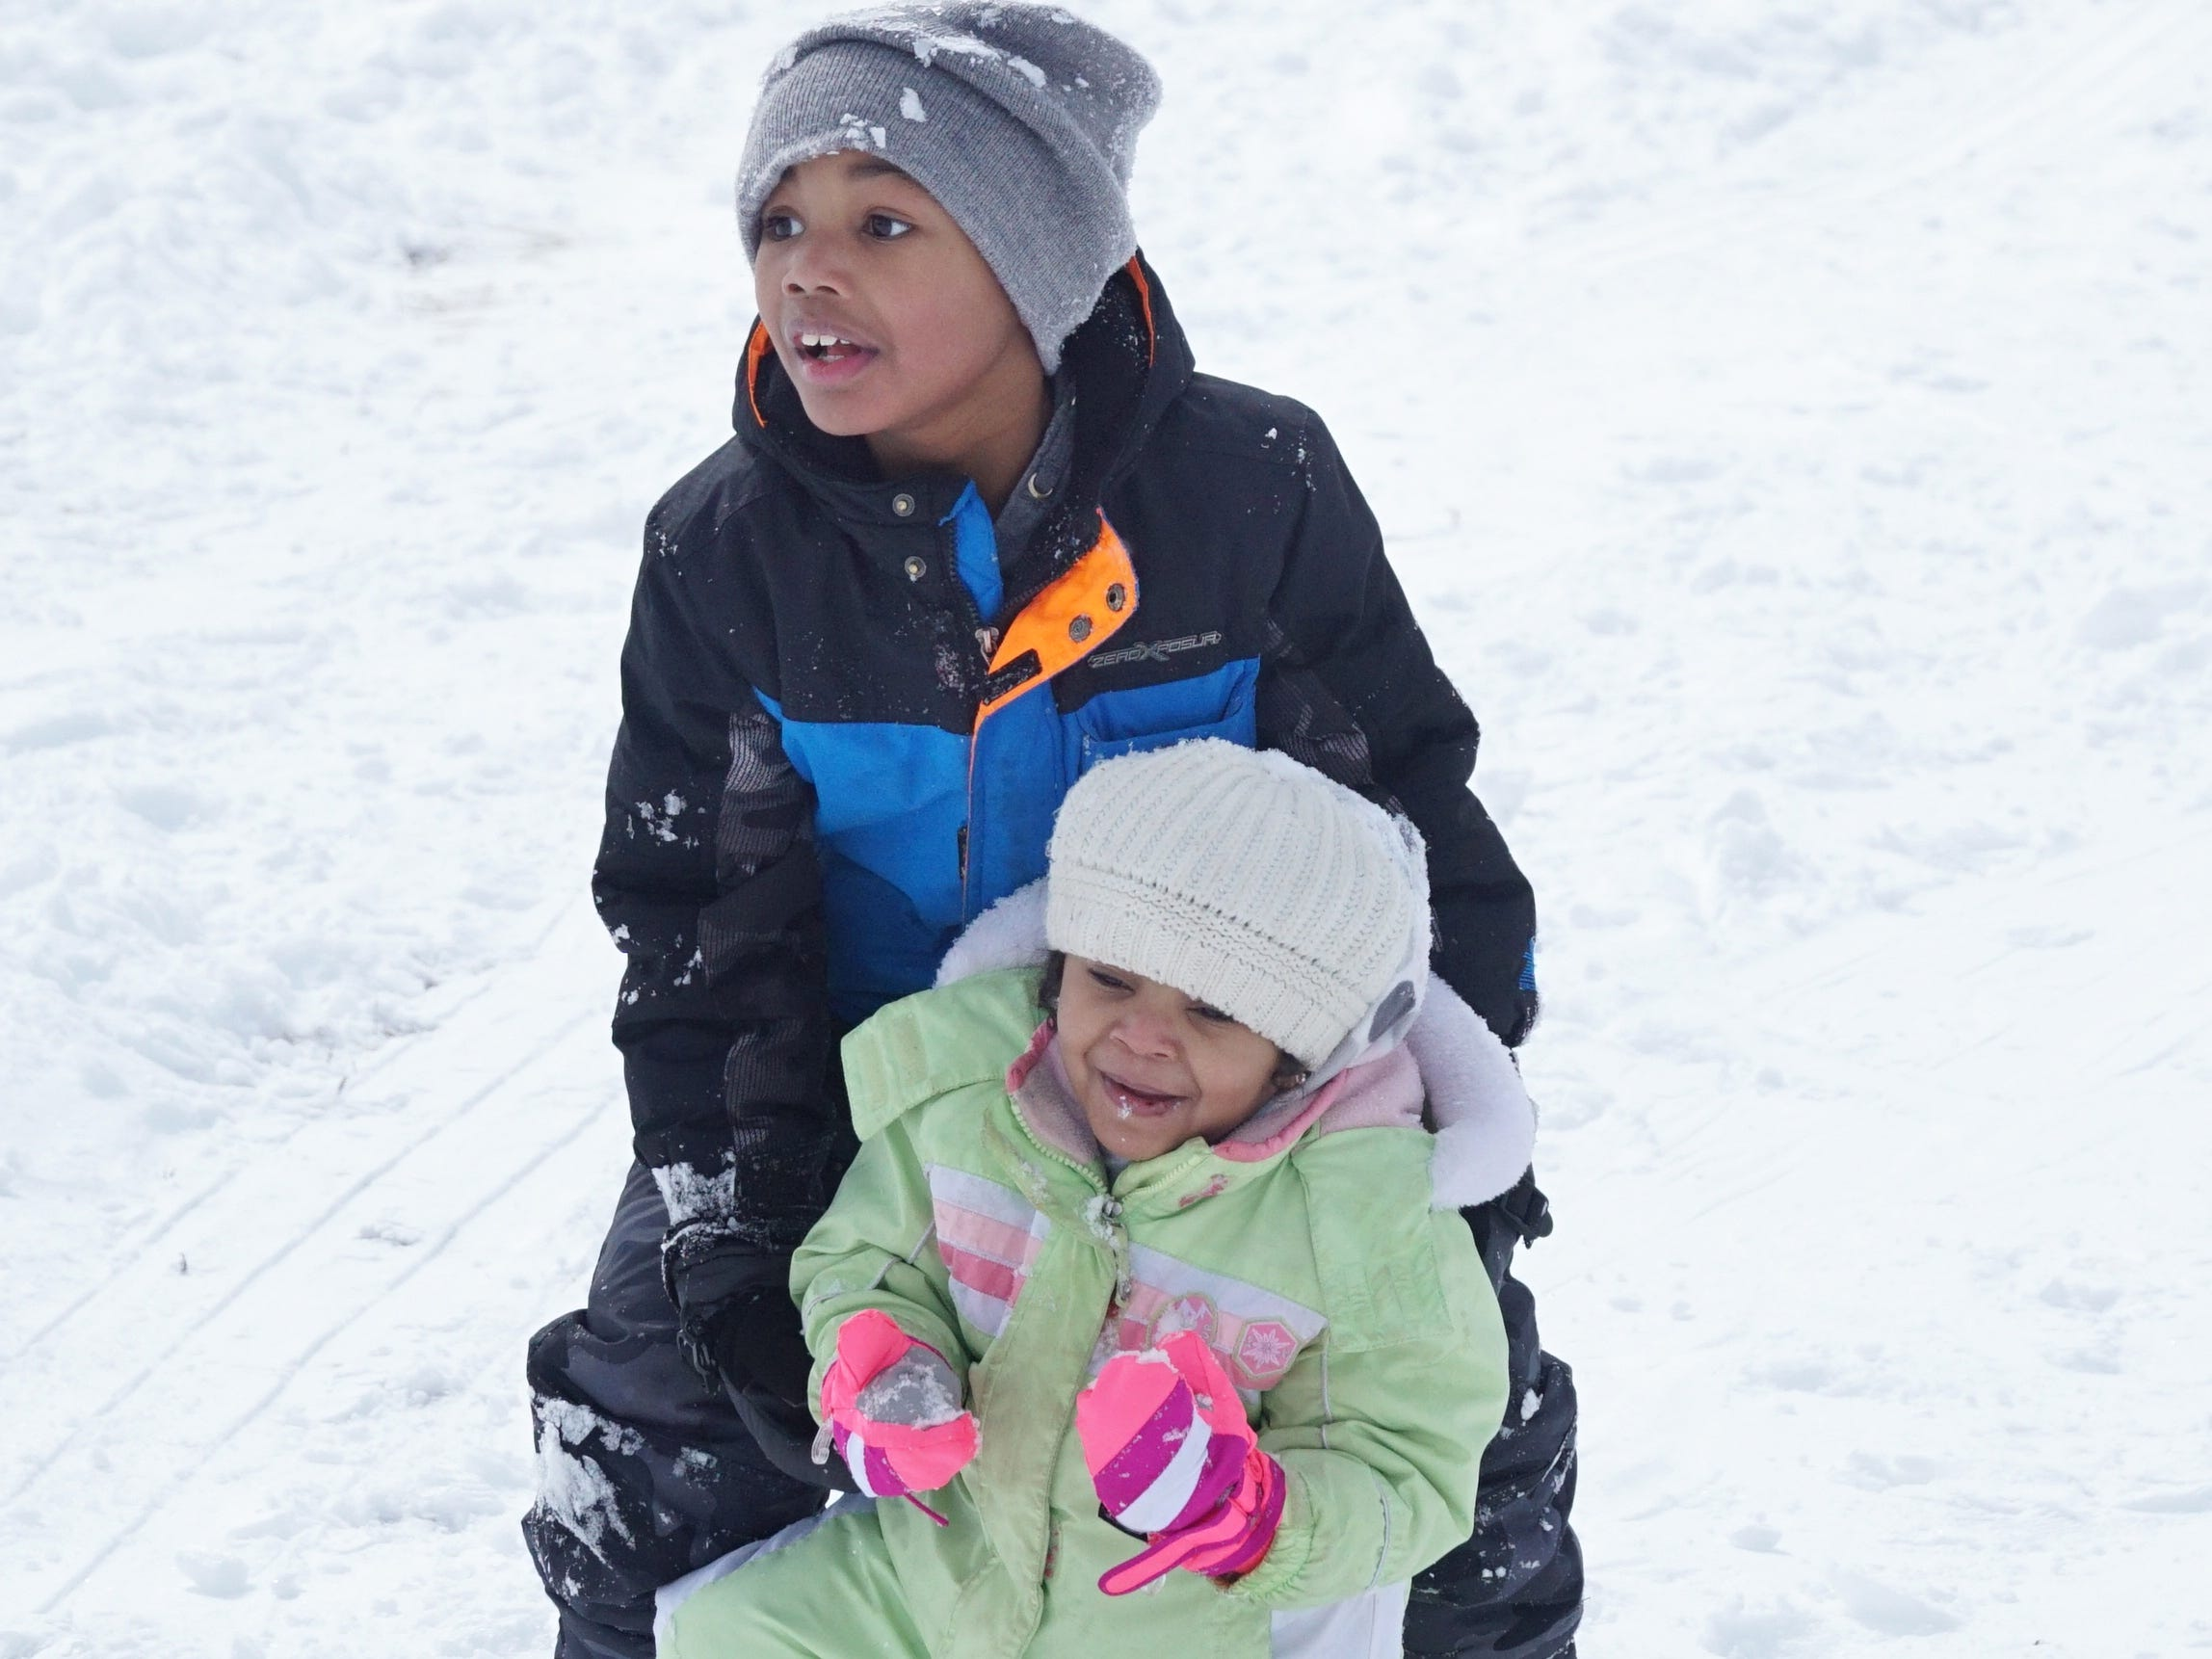 Eiljah Marbry, 6, helps his baby sister Elise, 3, up the hill as the two were sledding in Farmington on Feb. 18.